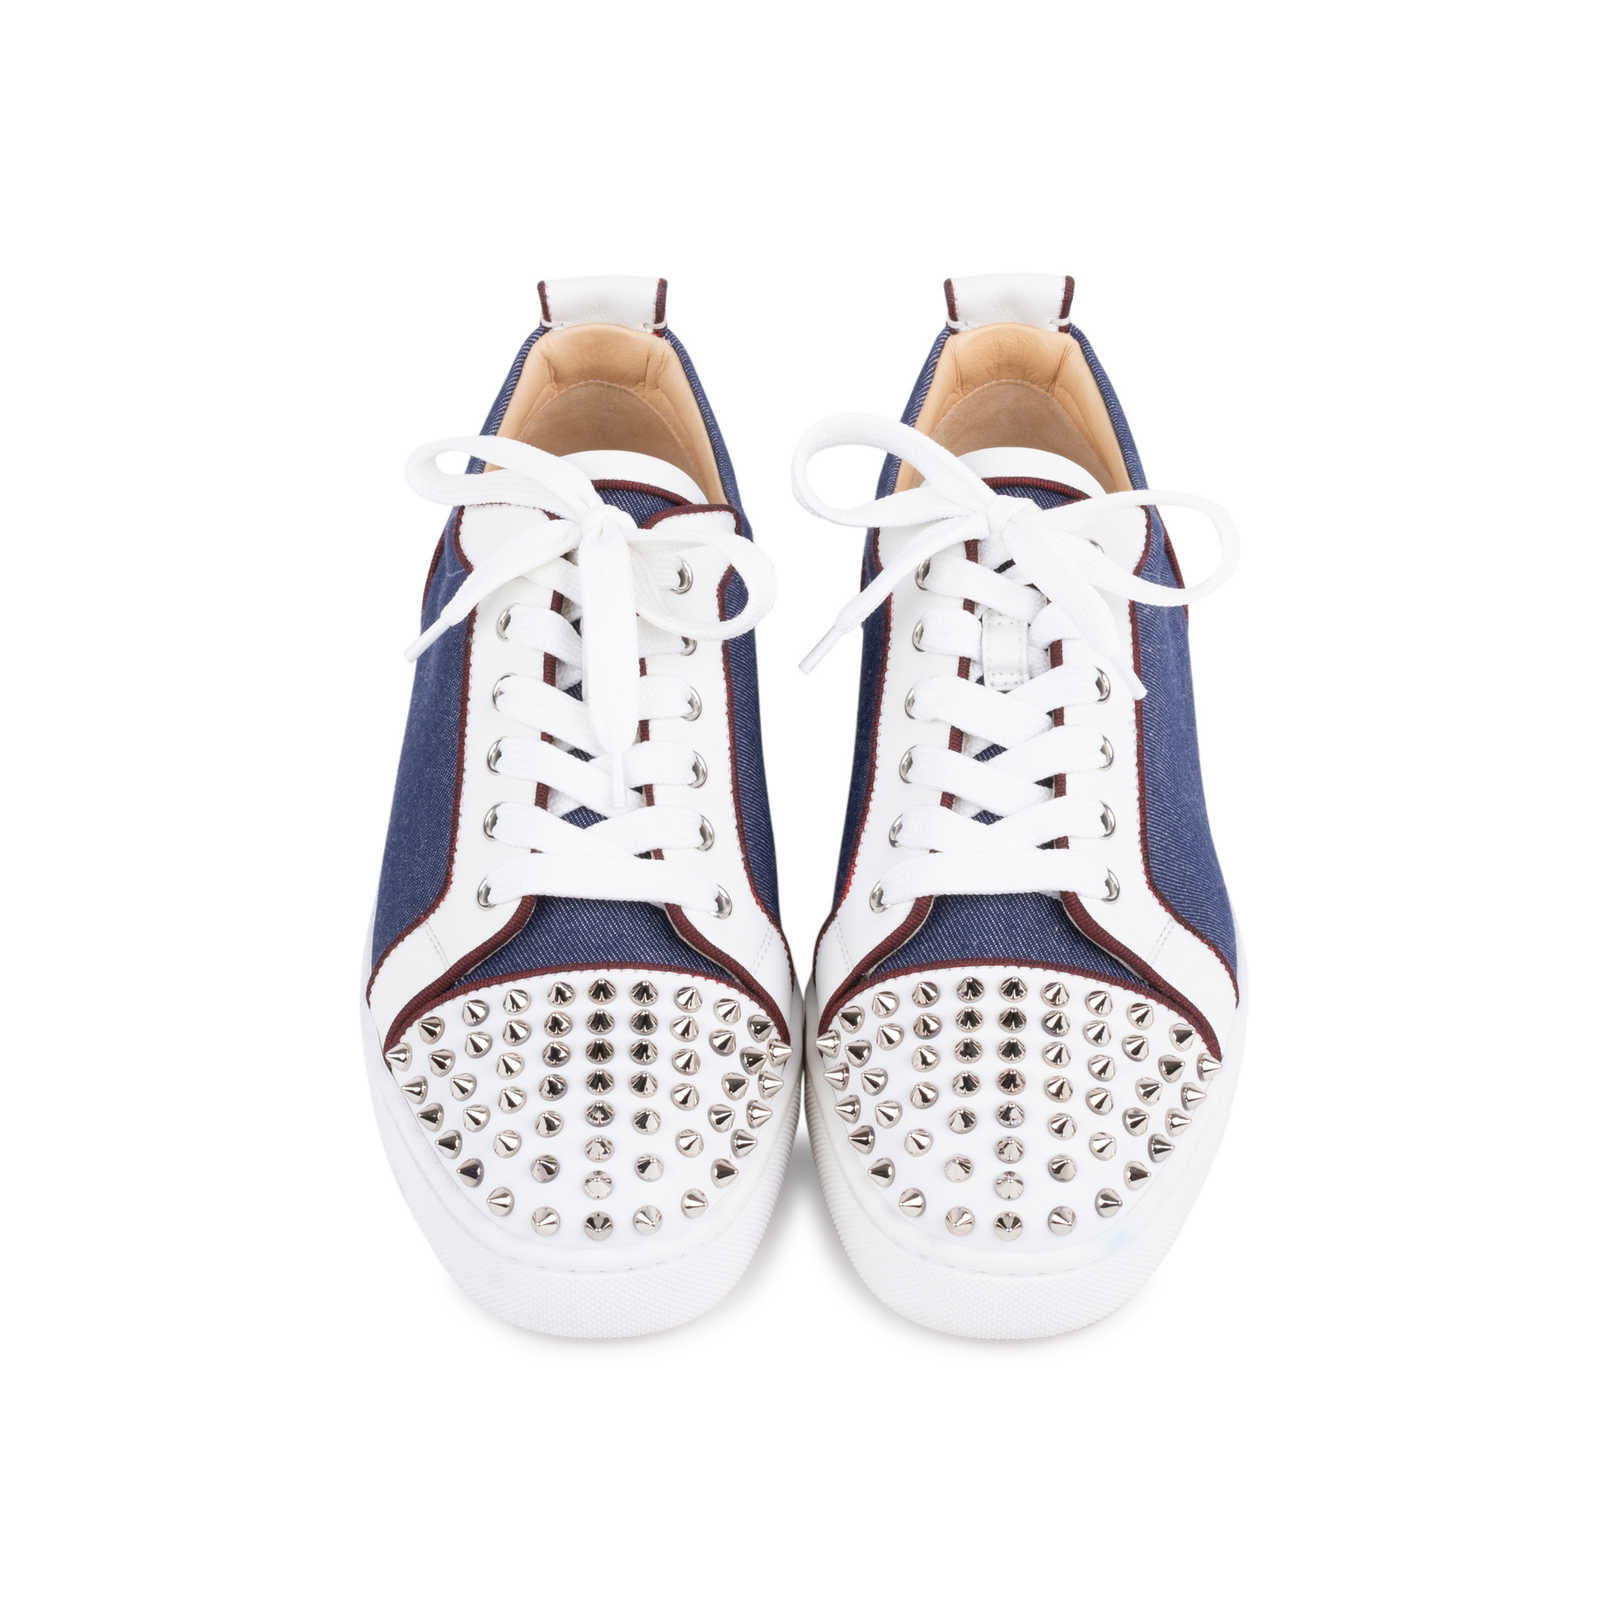 check out 8fad8 dd257 Authentic Second Hand Christian Louboutin Louis Junior ...